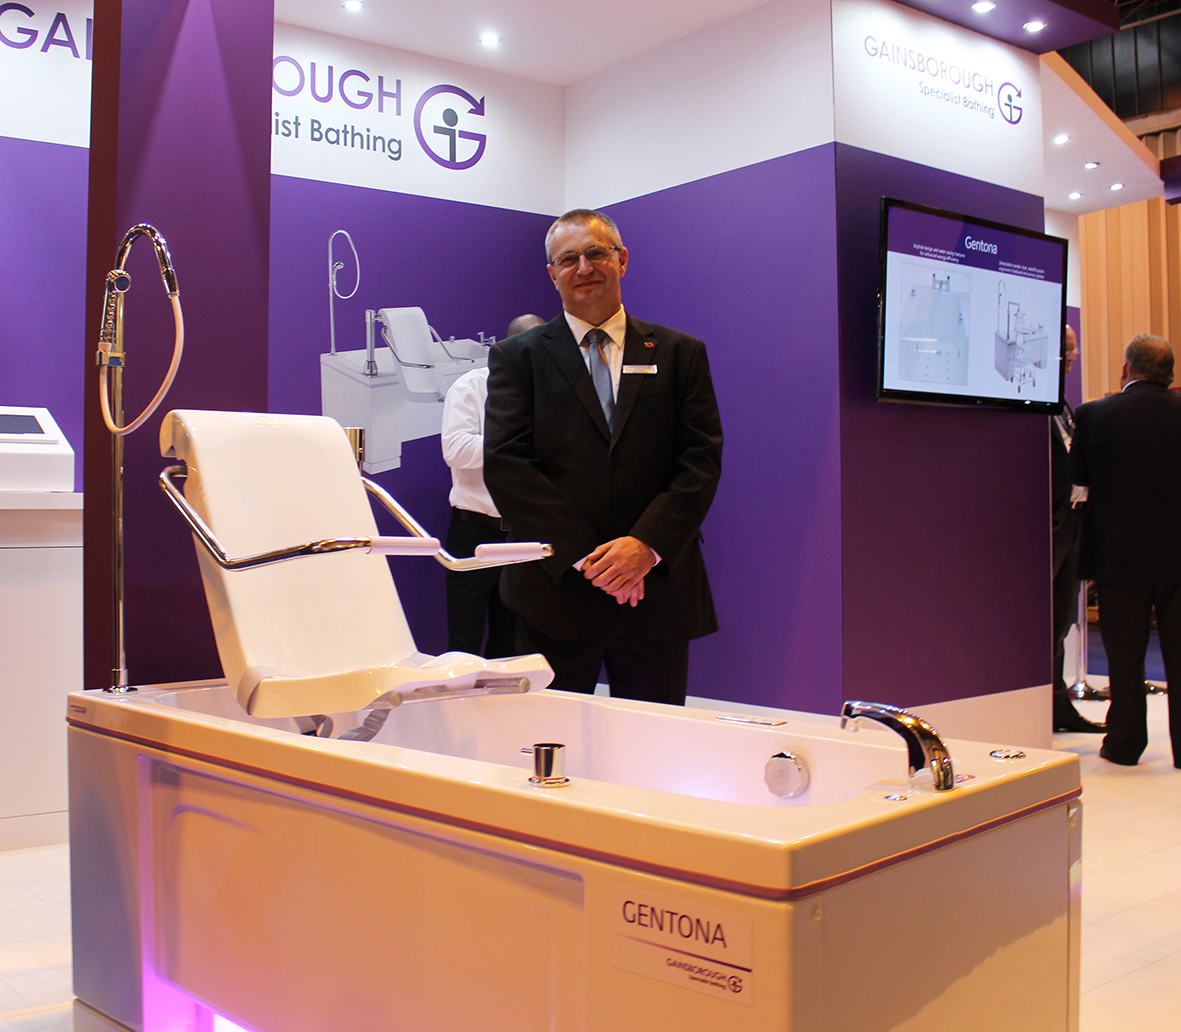 GAINSBOROUGH SPECIALIST BATHING LAUNCHES INNOVATIVE NEW ASSISTED BATH RANGE